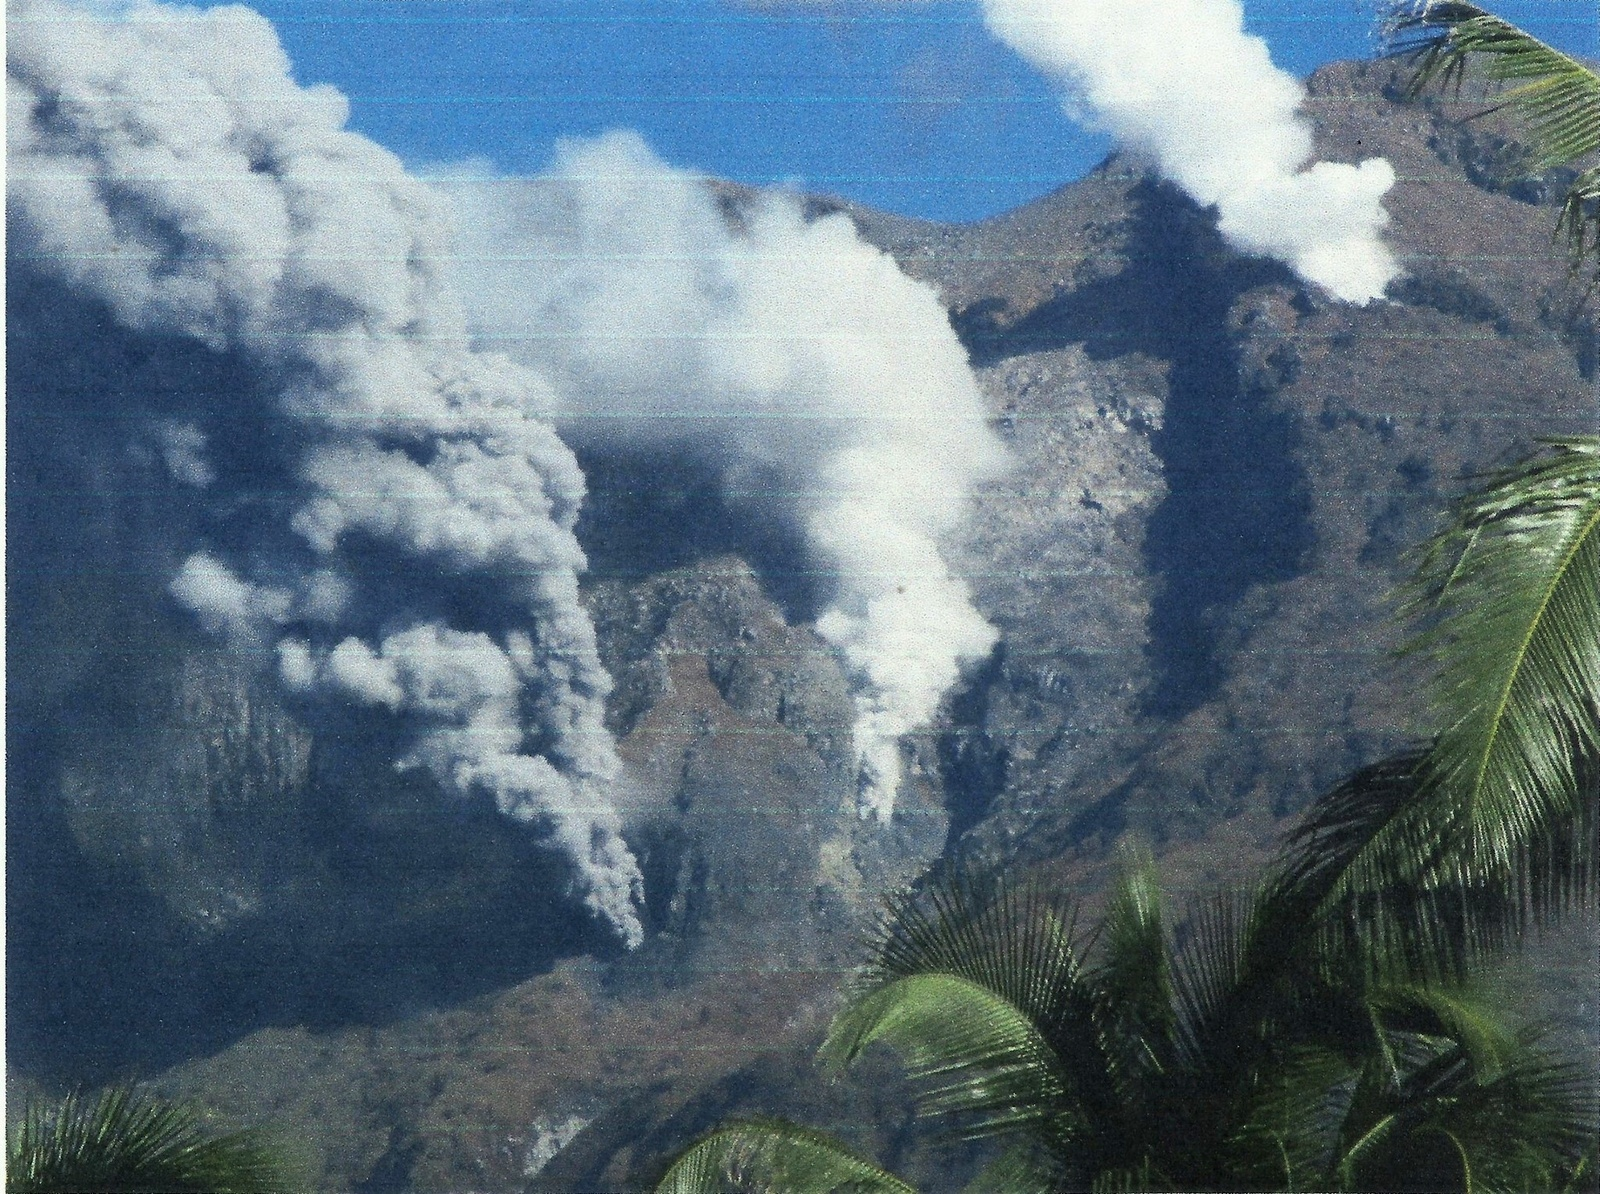 Alert level raised at Bulusan and kanlaon volcanoes after anomalous activity is confirmed at both volcanoes in the Philippines.